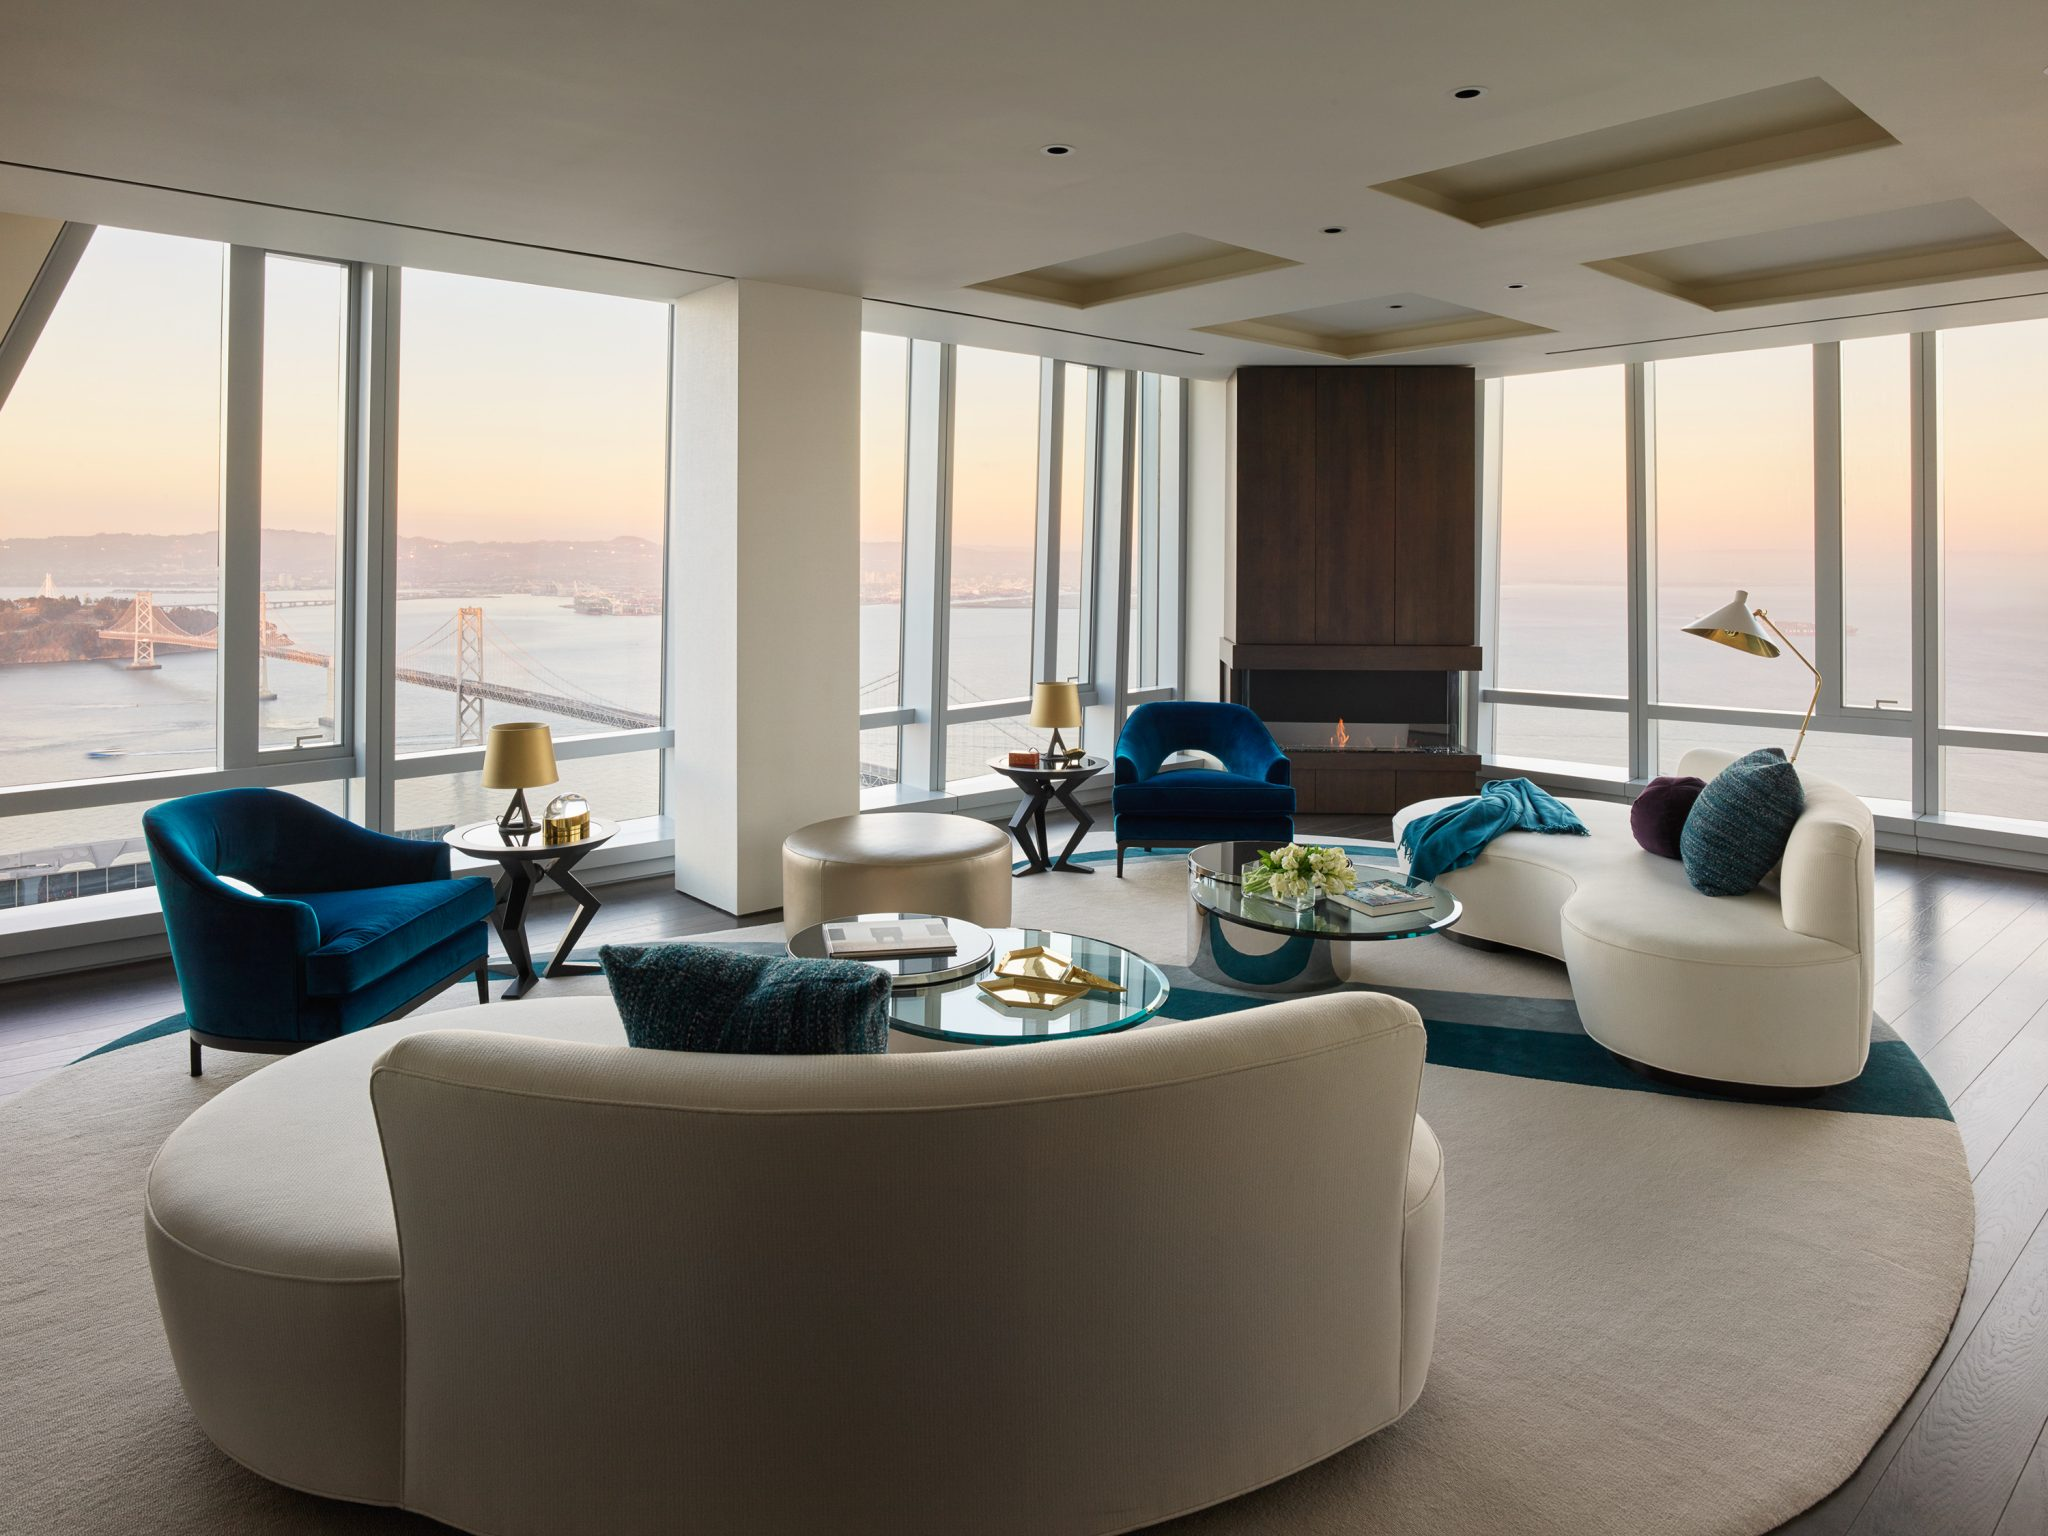 181 Fremont's New Condos in San Francisco